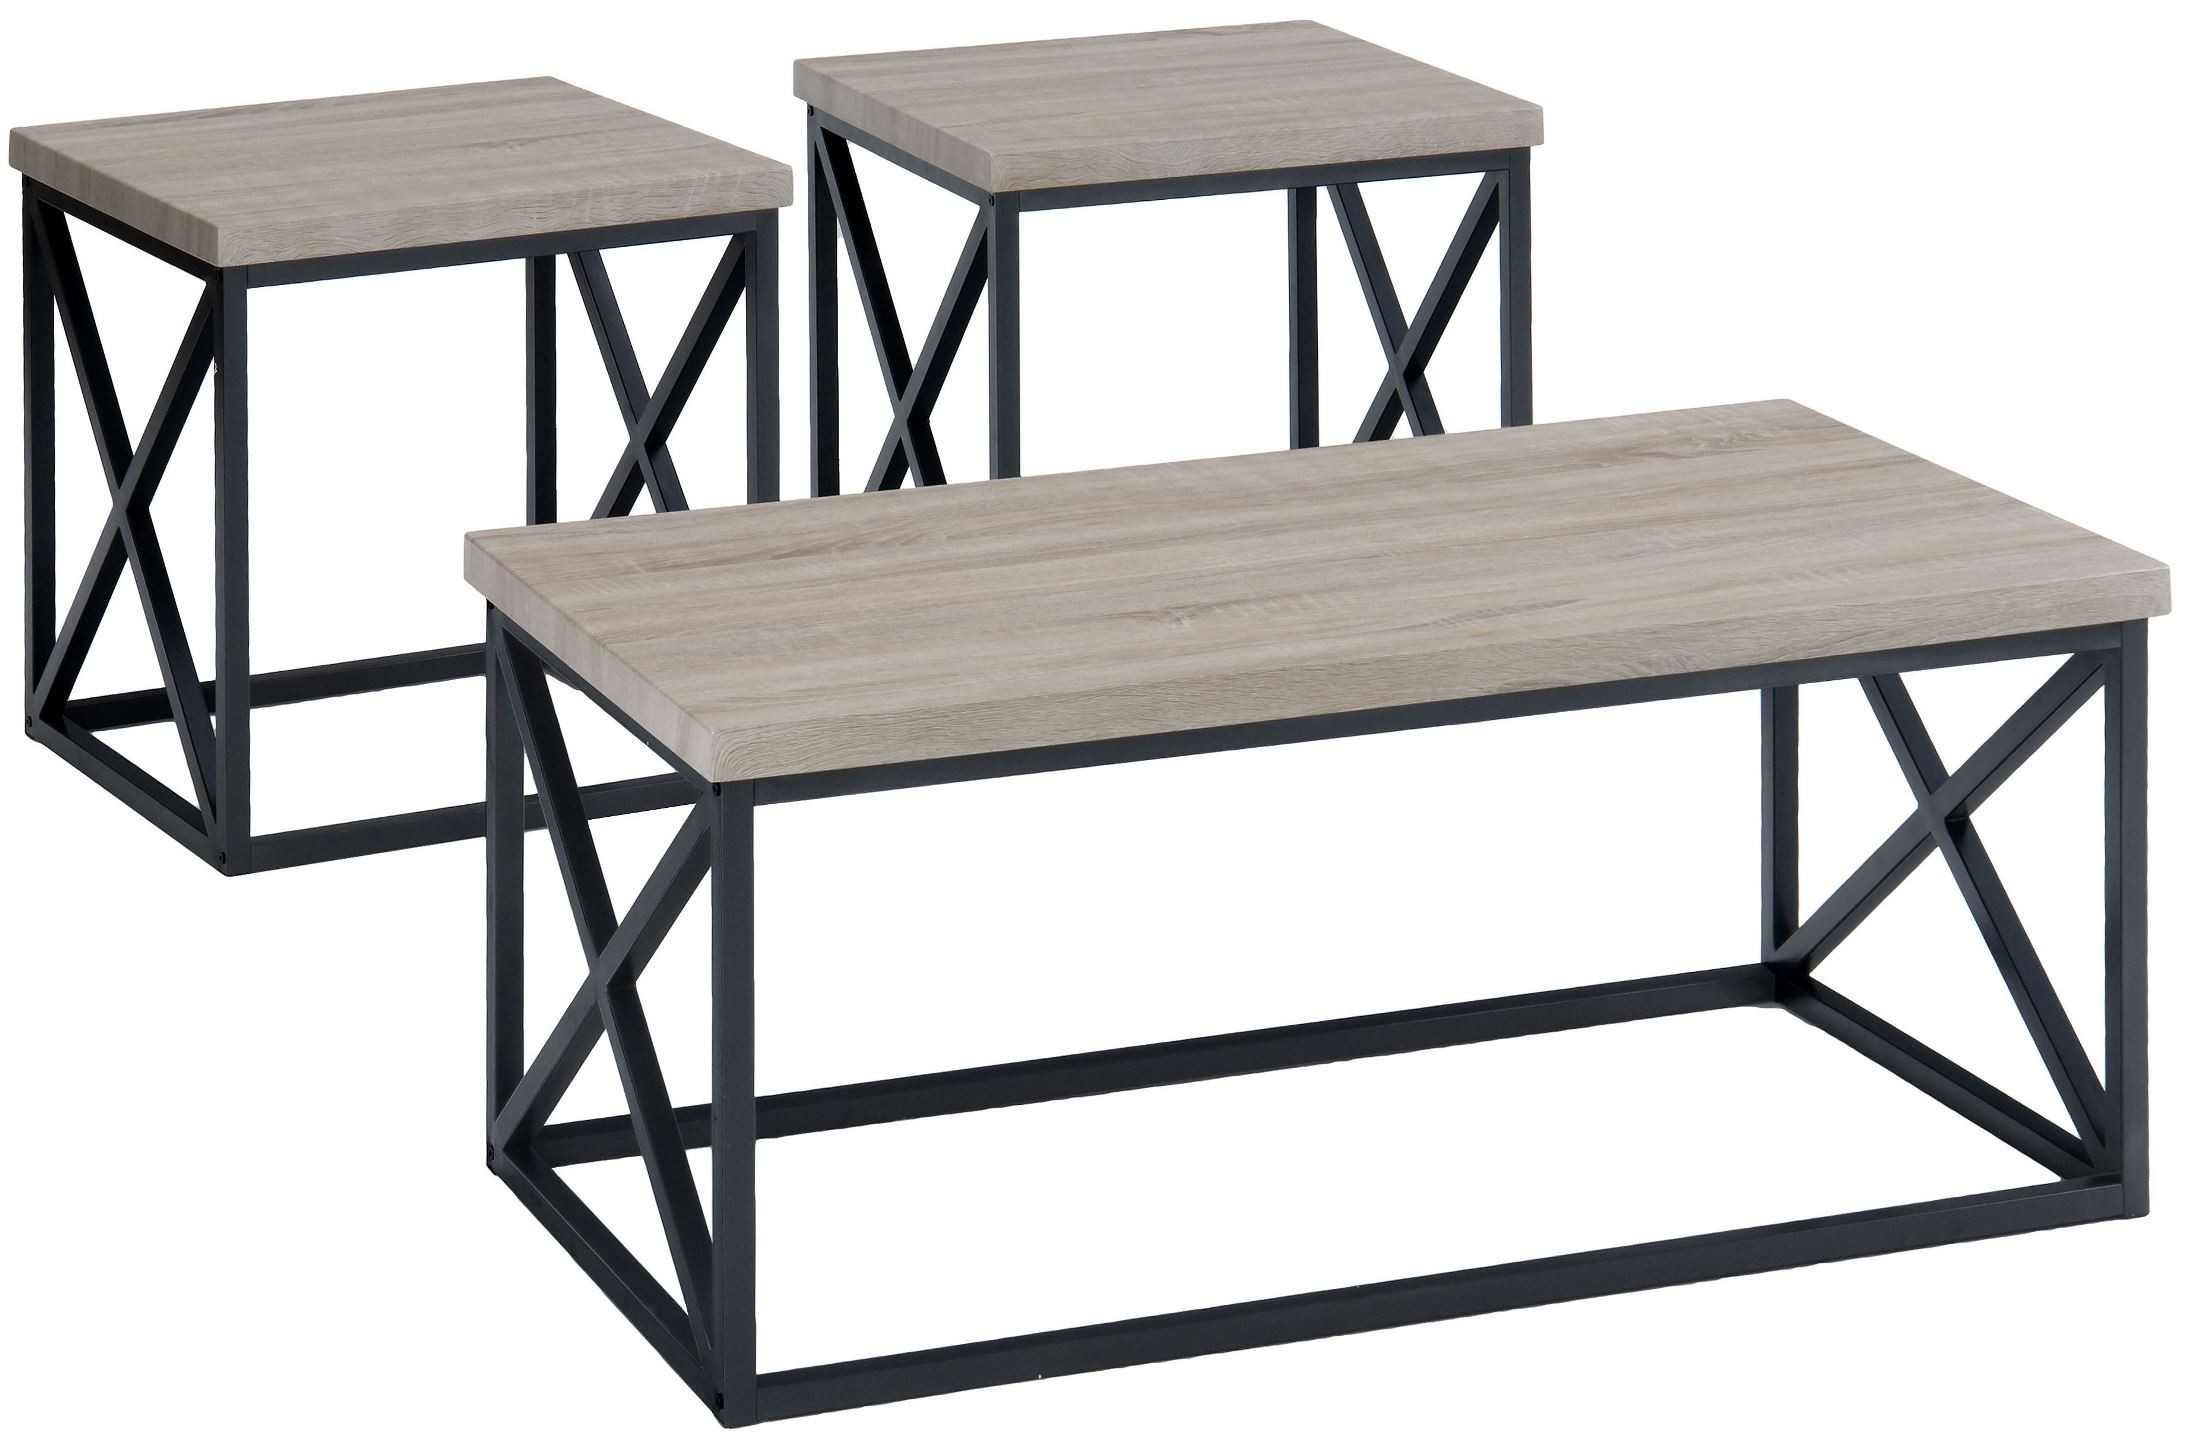 Orion ash 3 piece occasional table set from jofran for Occasional table manufacturers